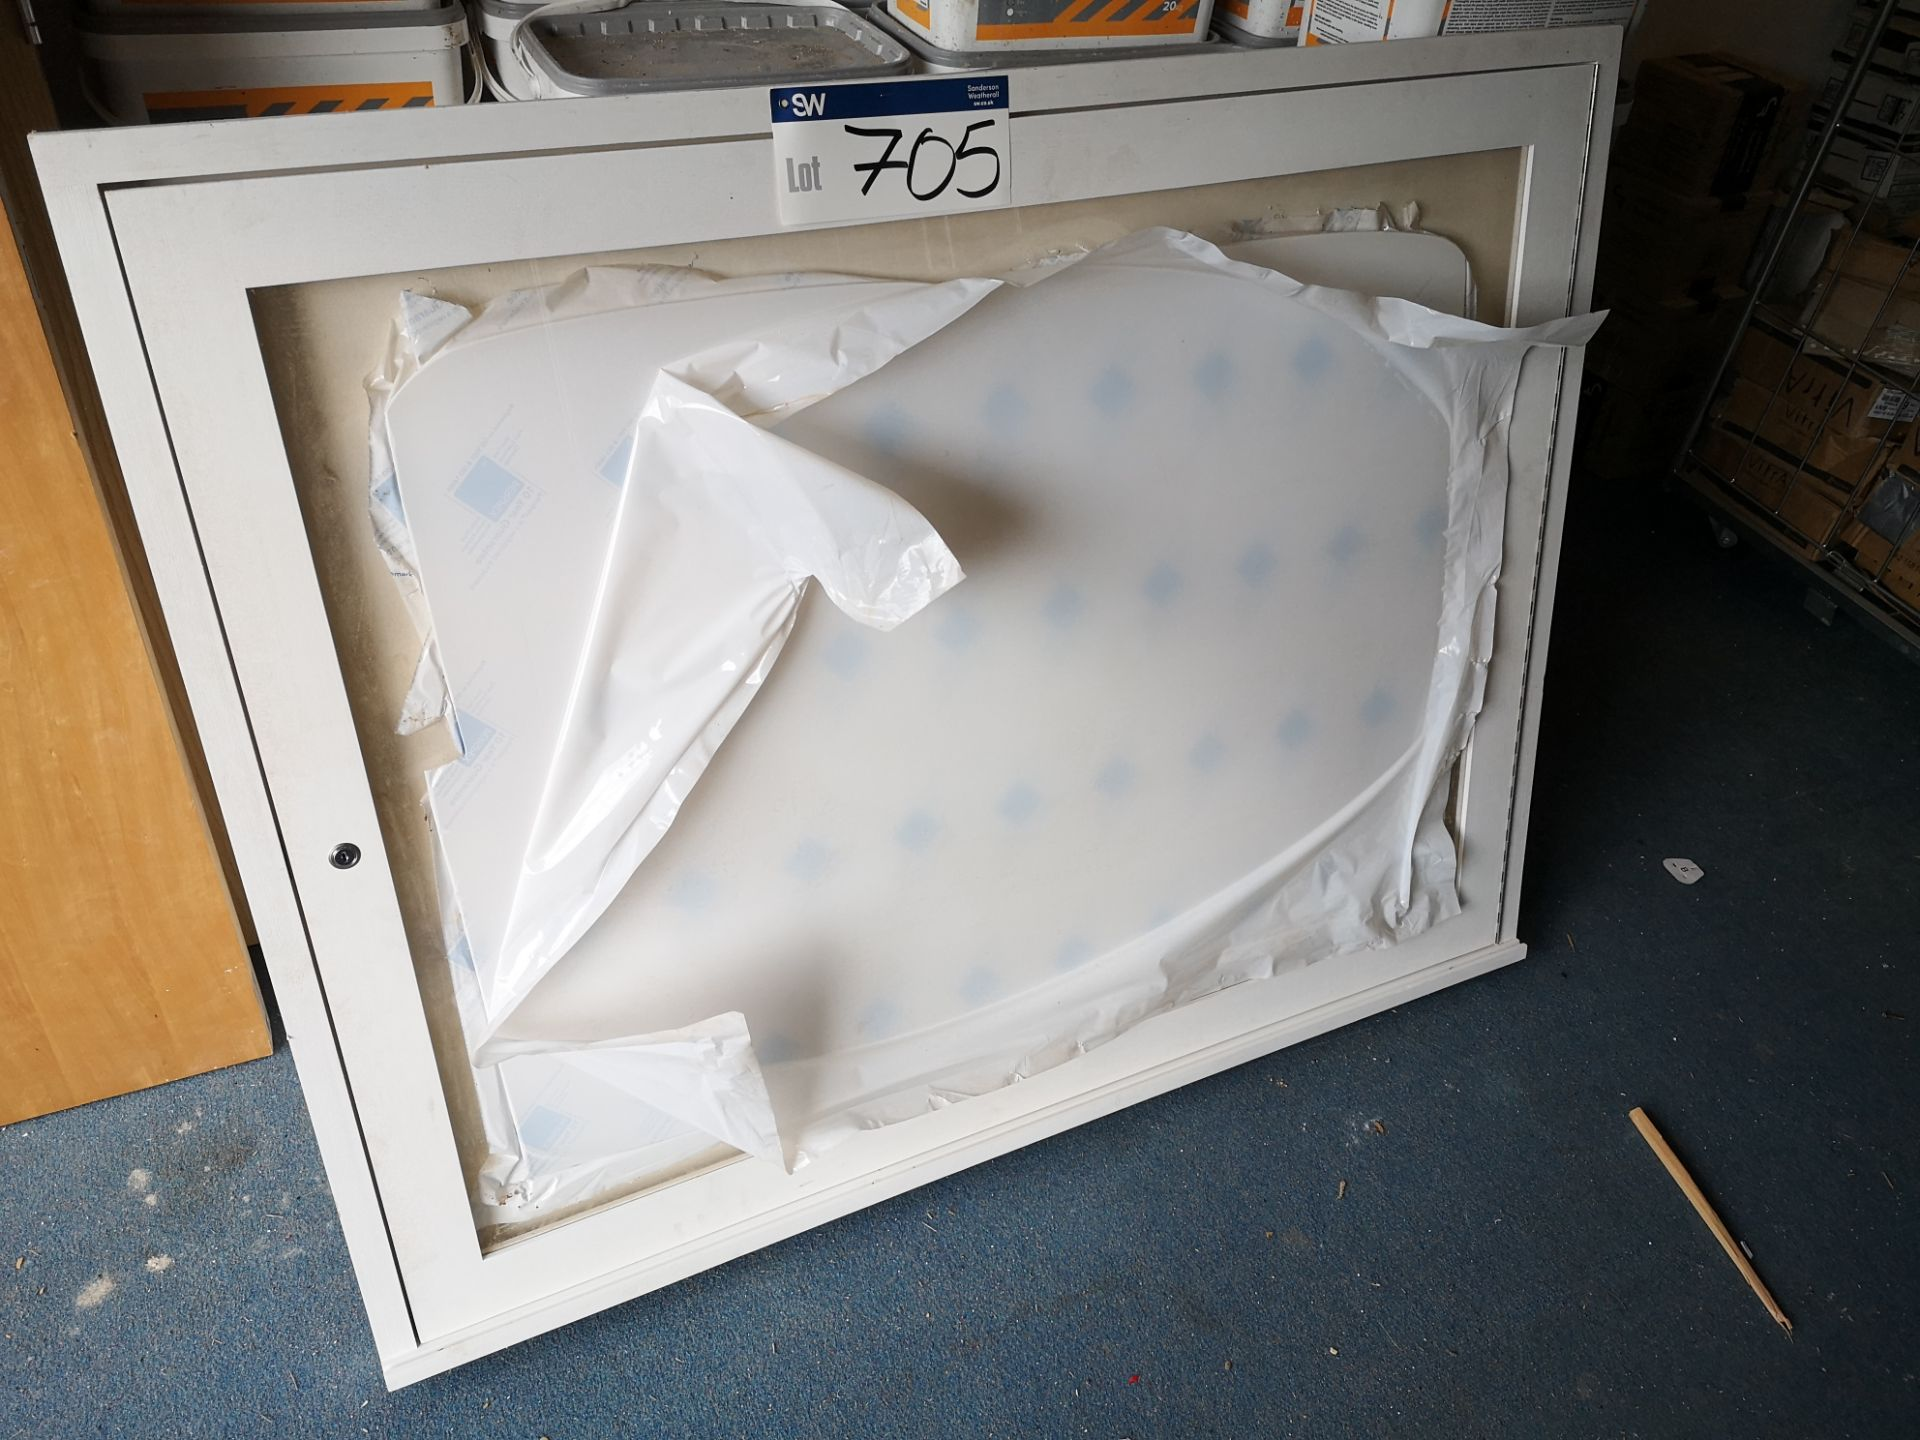 Lot 705 - Wooden Framed Display Unit, approx. 1100mm x 1410m